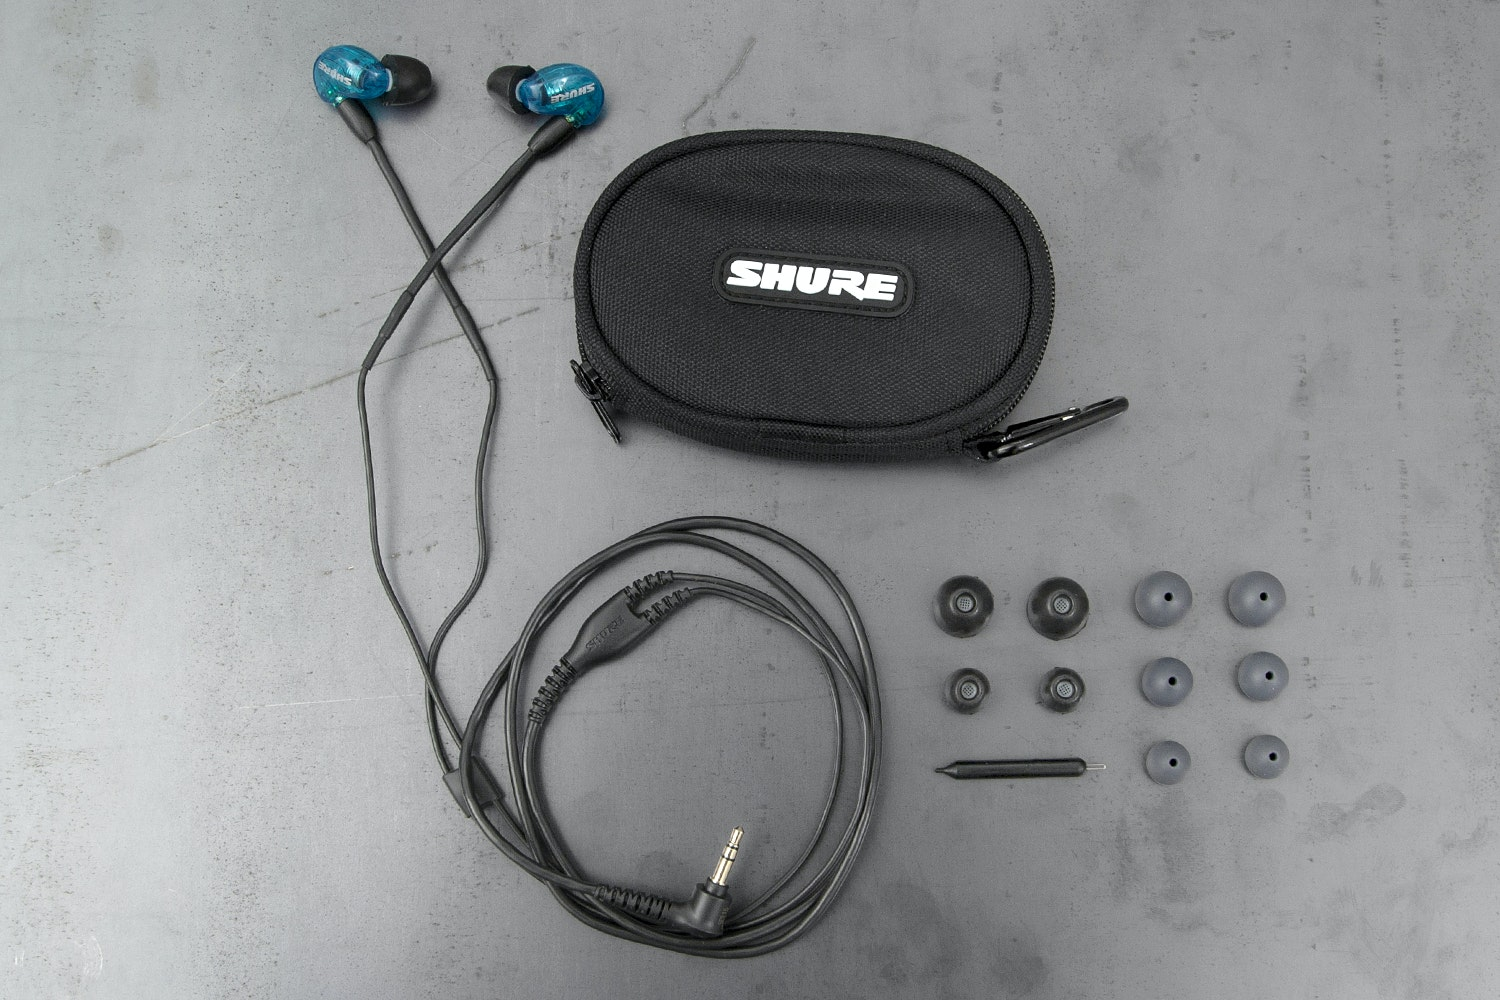 Shure SE215 Blue Earphones LE